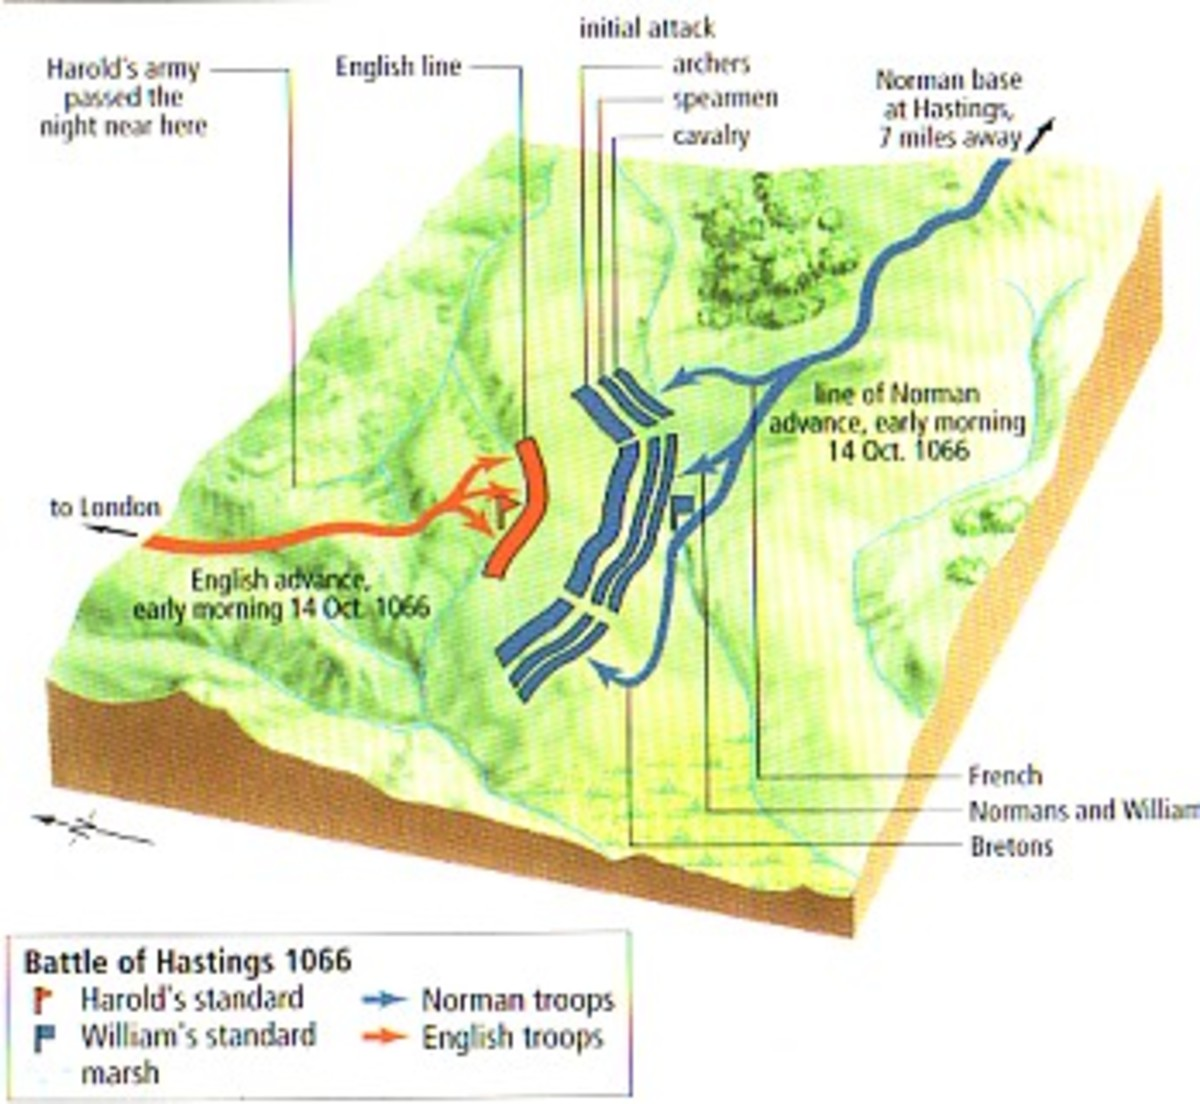 Battle of Hastings - physical elements show the lie of the land: Caldbec Hill - King Harold's shieldwall was ranged on the ridge - and Telham Hill where the Normans and their allies were ranged before engaging. Alan 'Rufus' and his Bretons were left